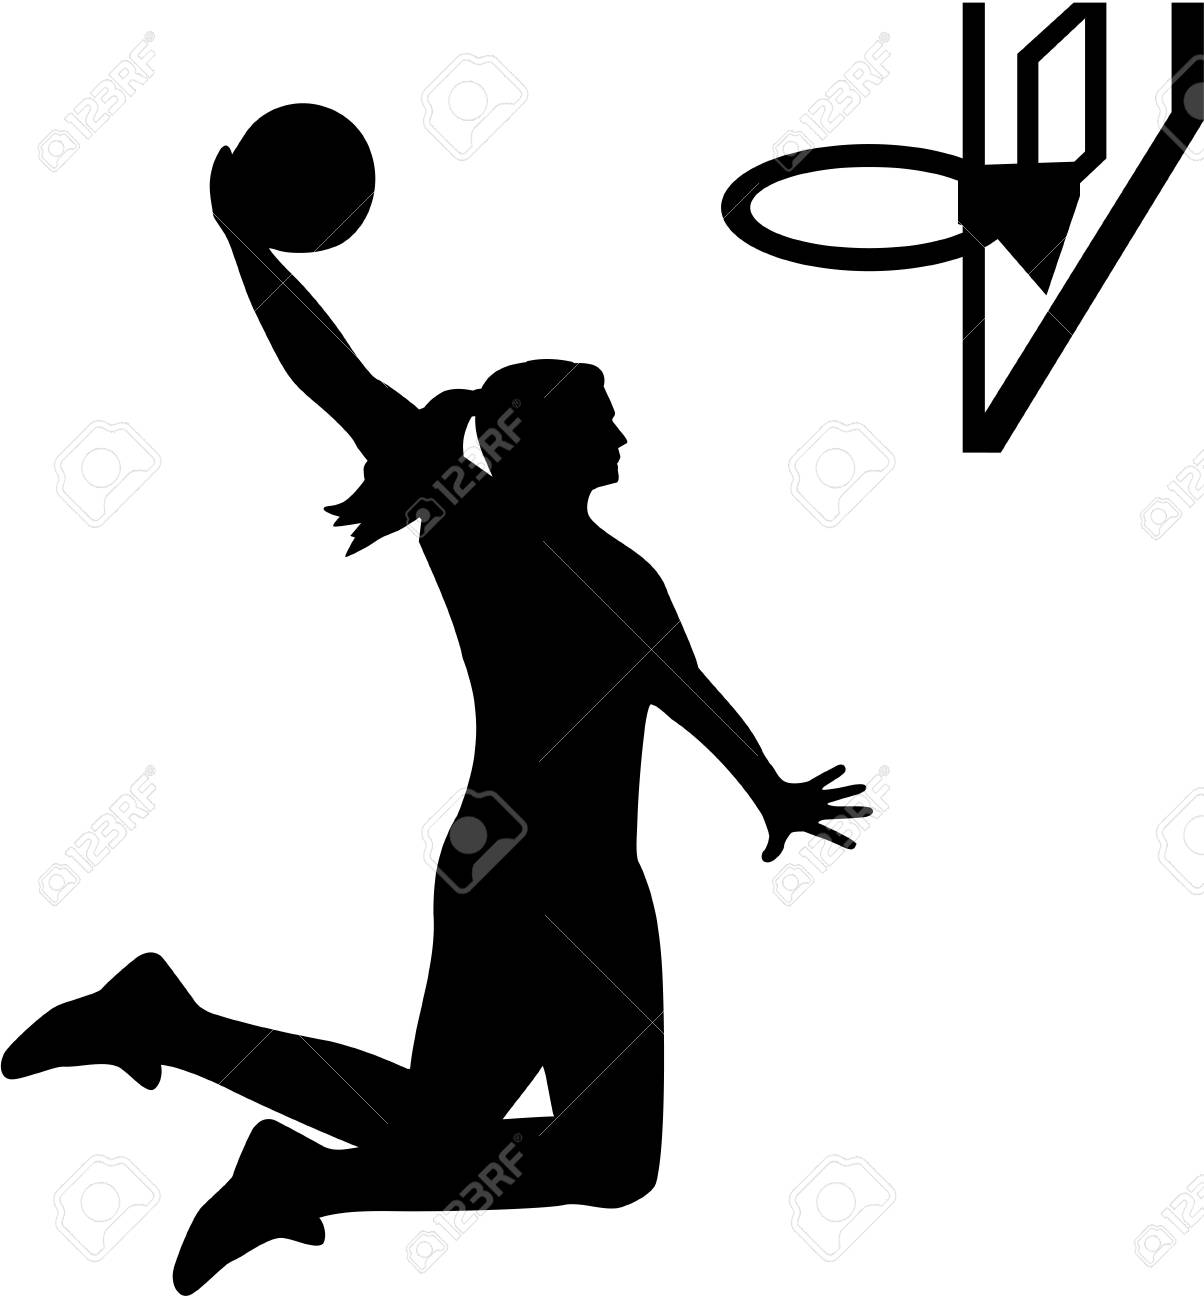 Female Basketball Player.